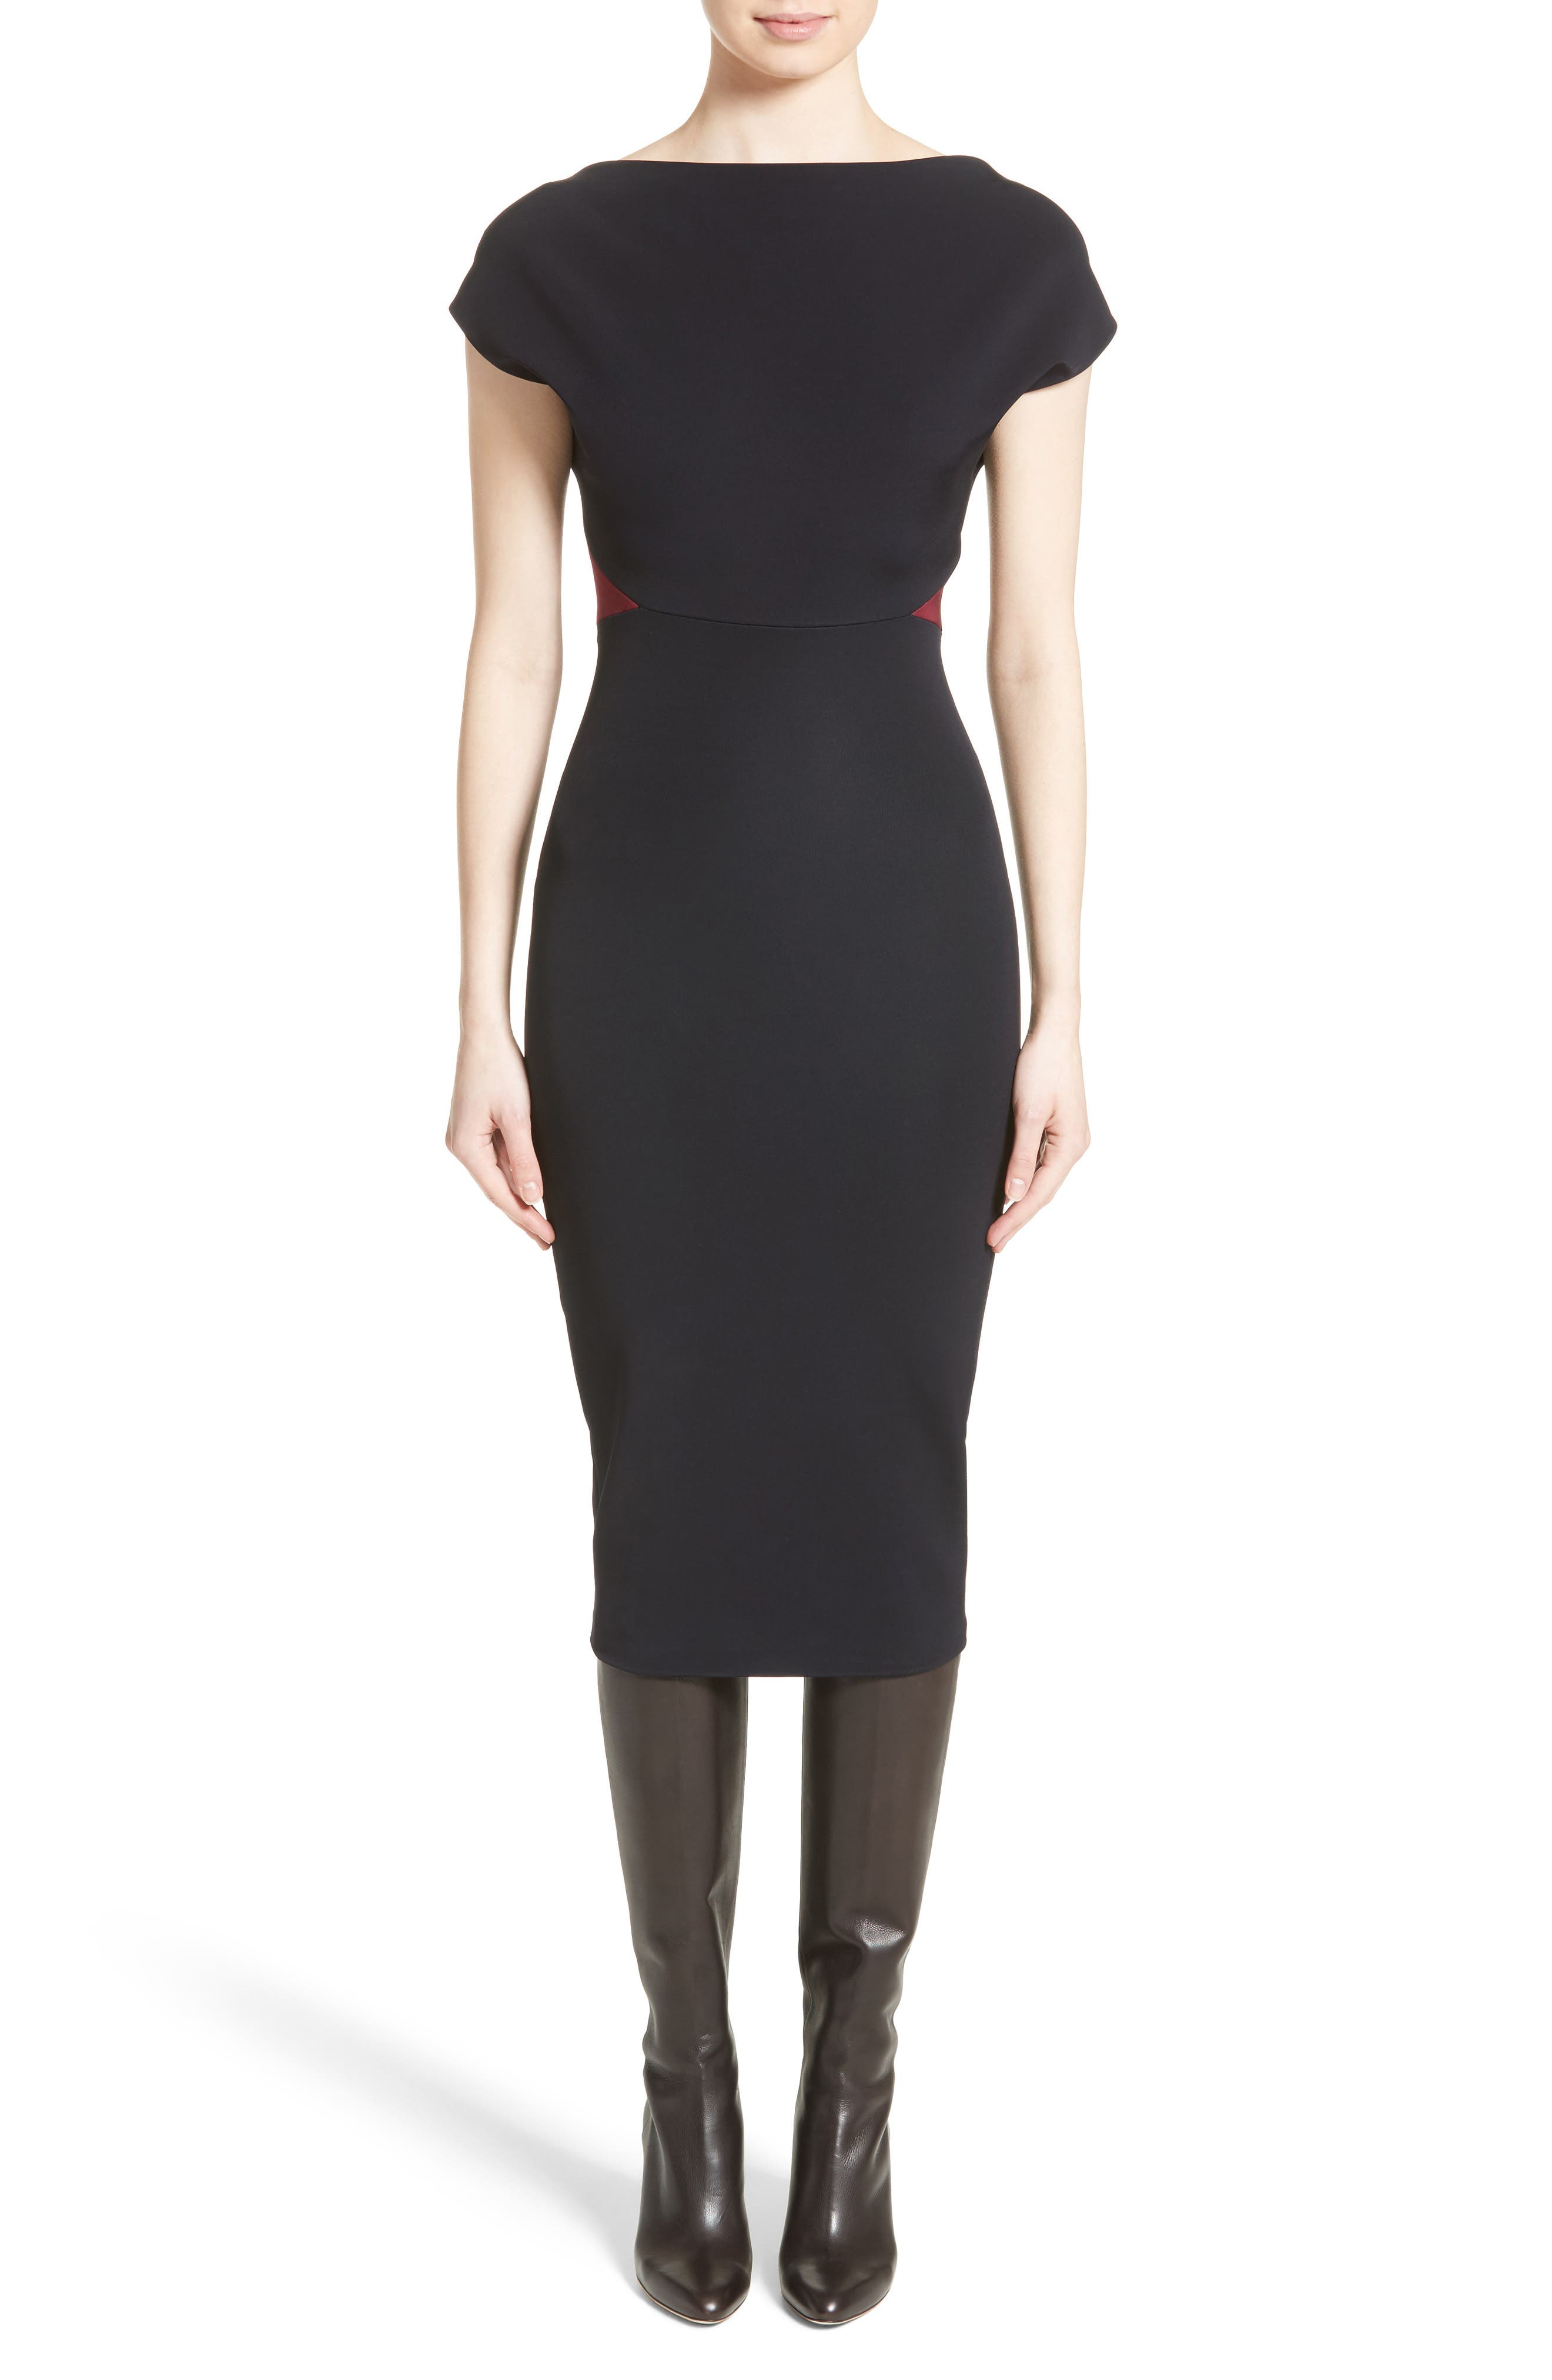 Alternate Image 1 Selected - Victoria Beckham Open Back Rib Knit Dress